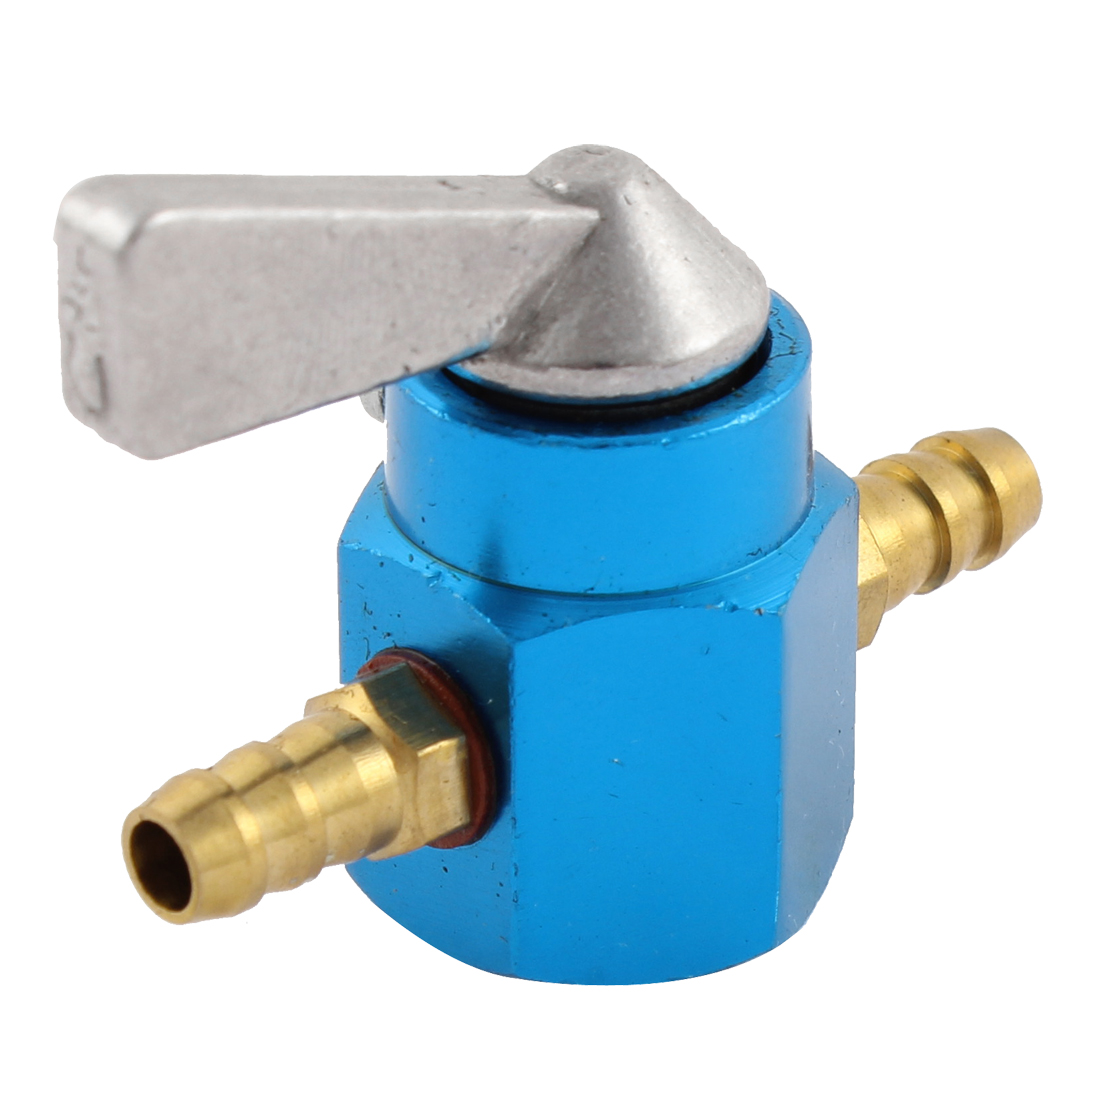 4mm Universal Motorcycle Bike Pit Scoote In-line Petrol ON-OFF Fuel Tap Switch Blue